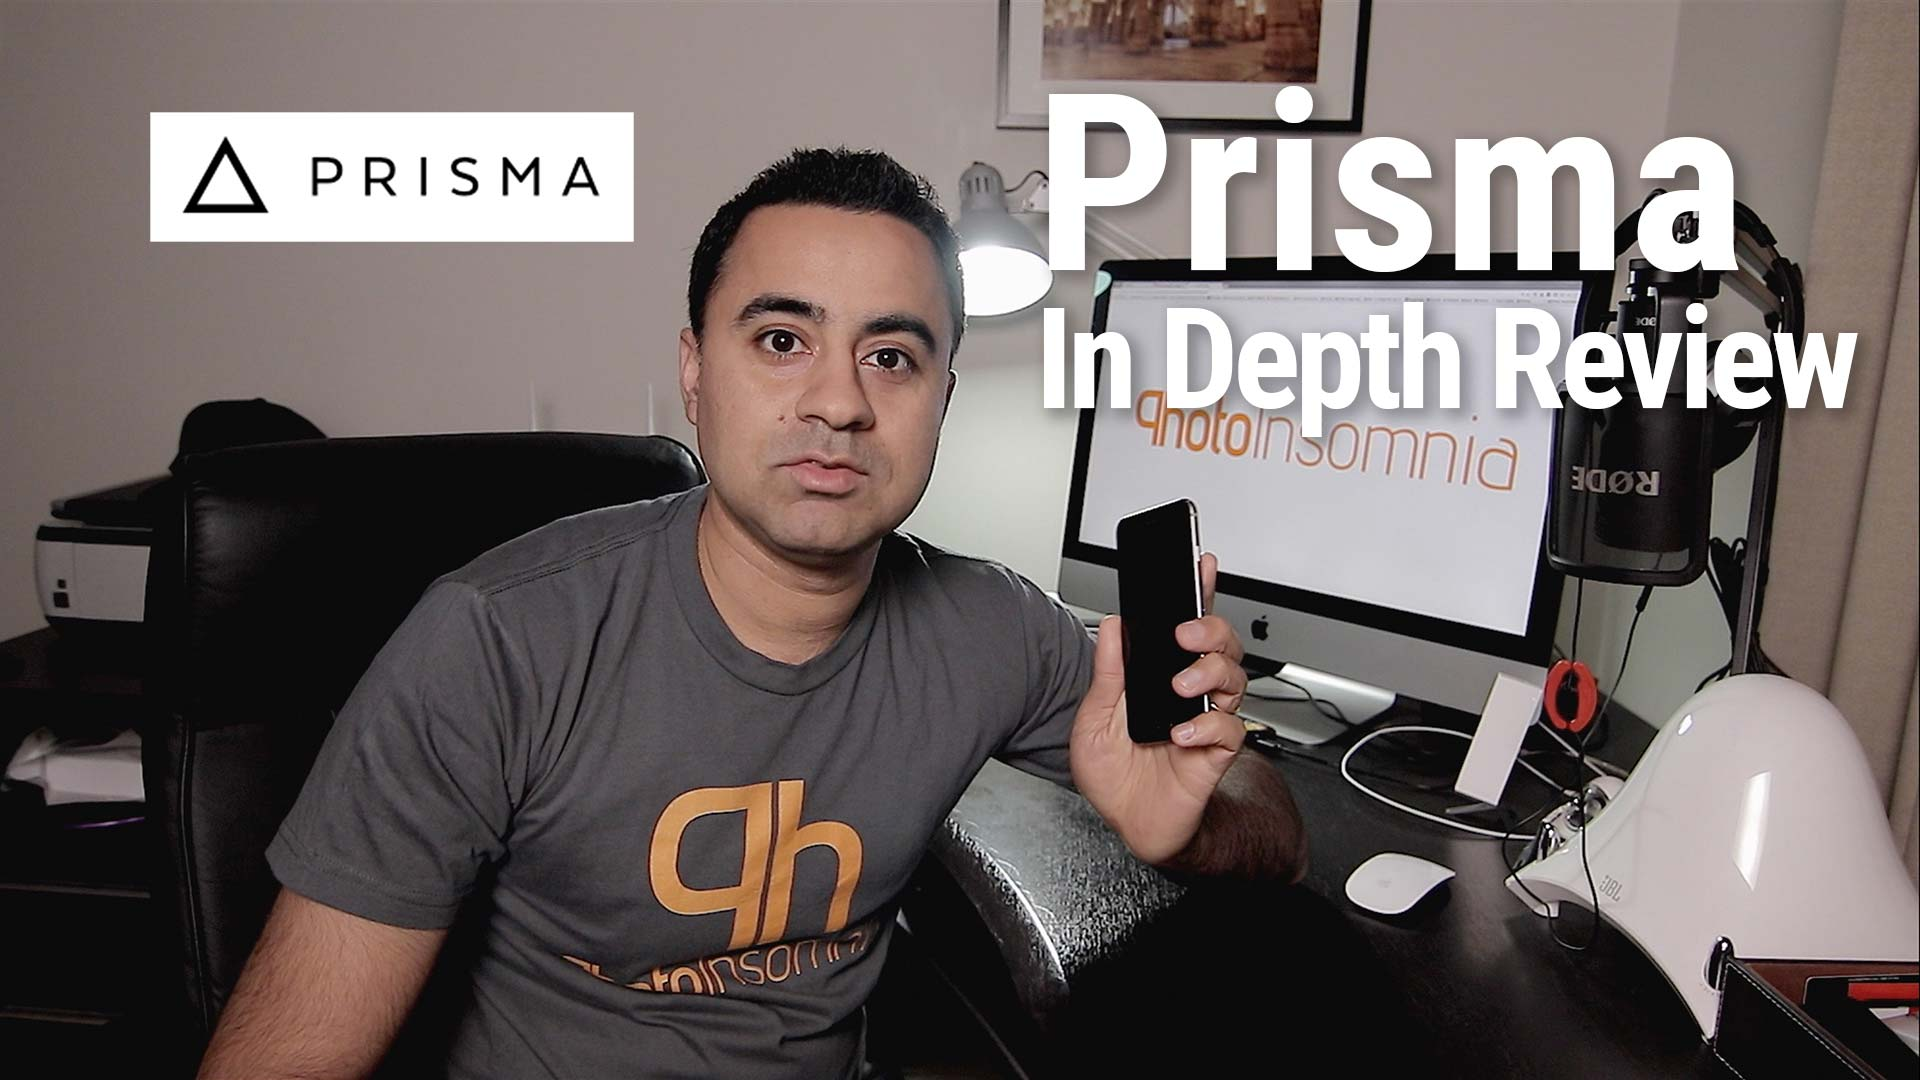 Prisma App – In Depth Review